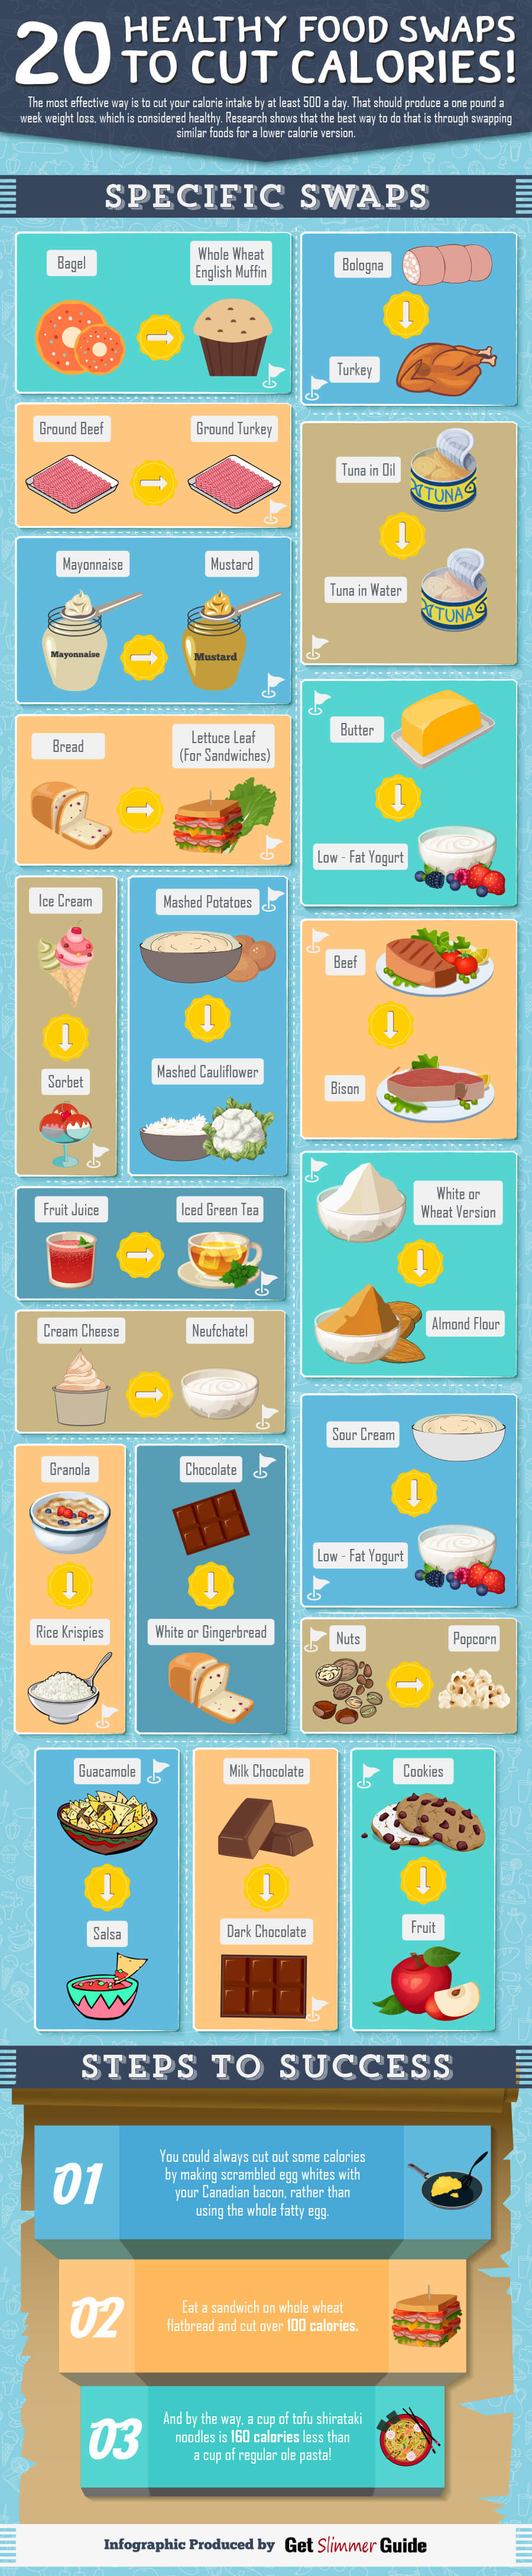 20 Healthy Food Swaps to Cut Calories